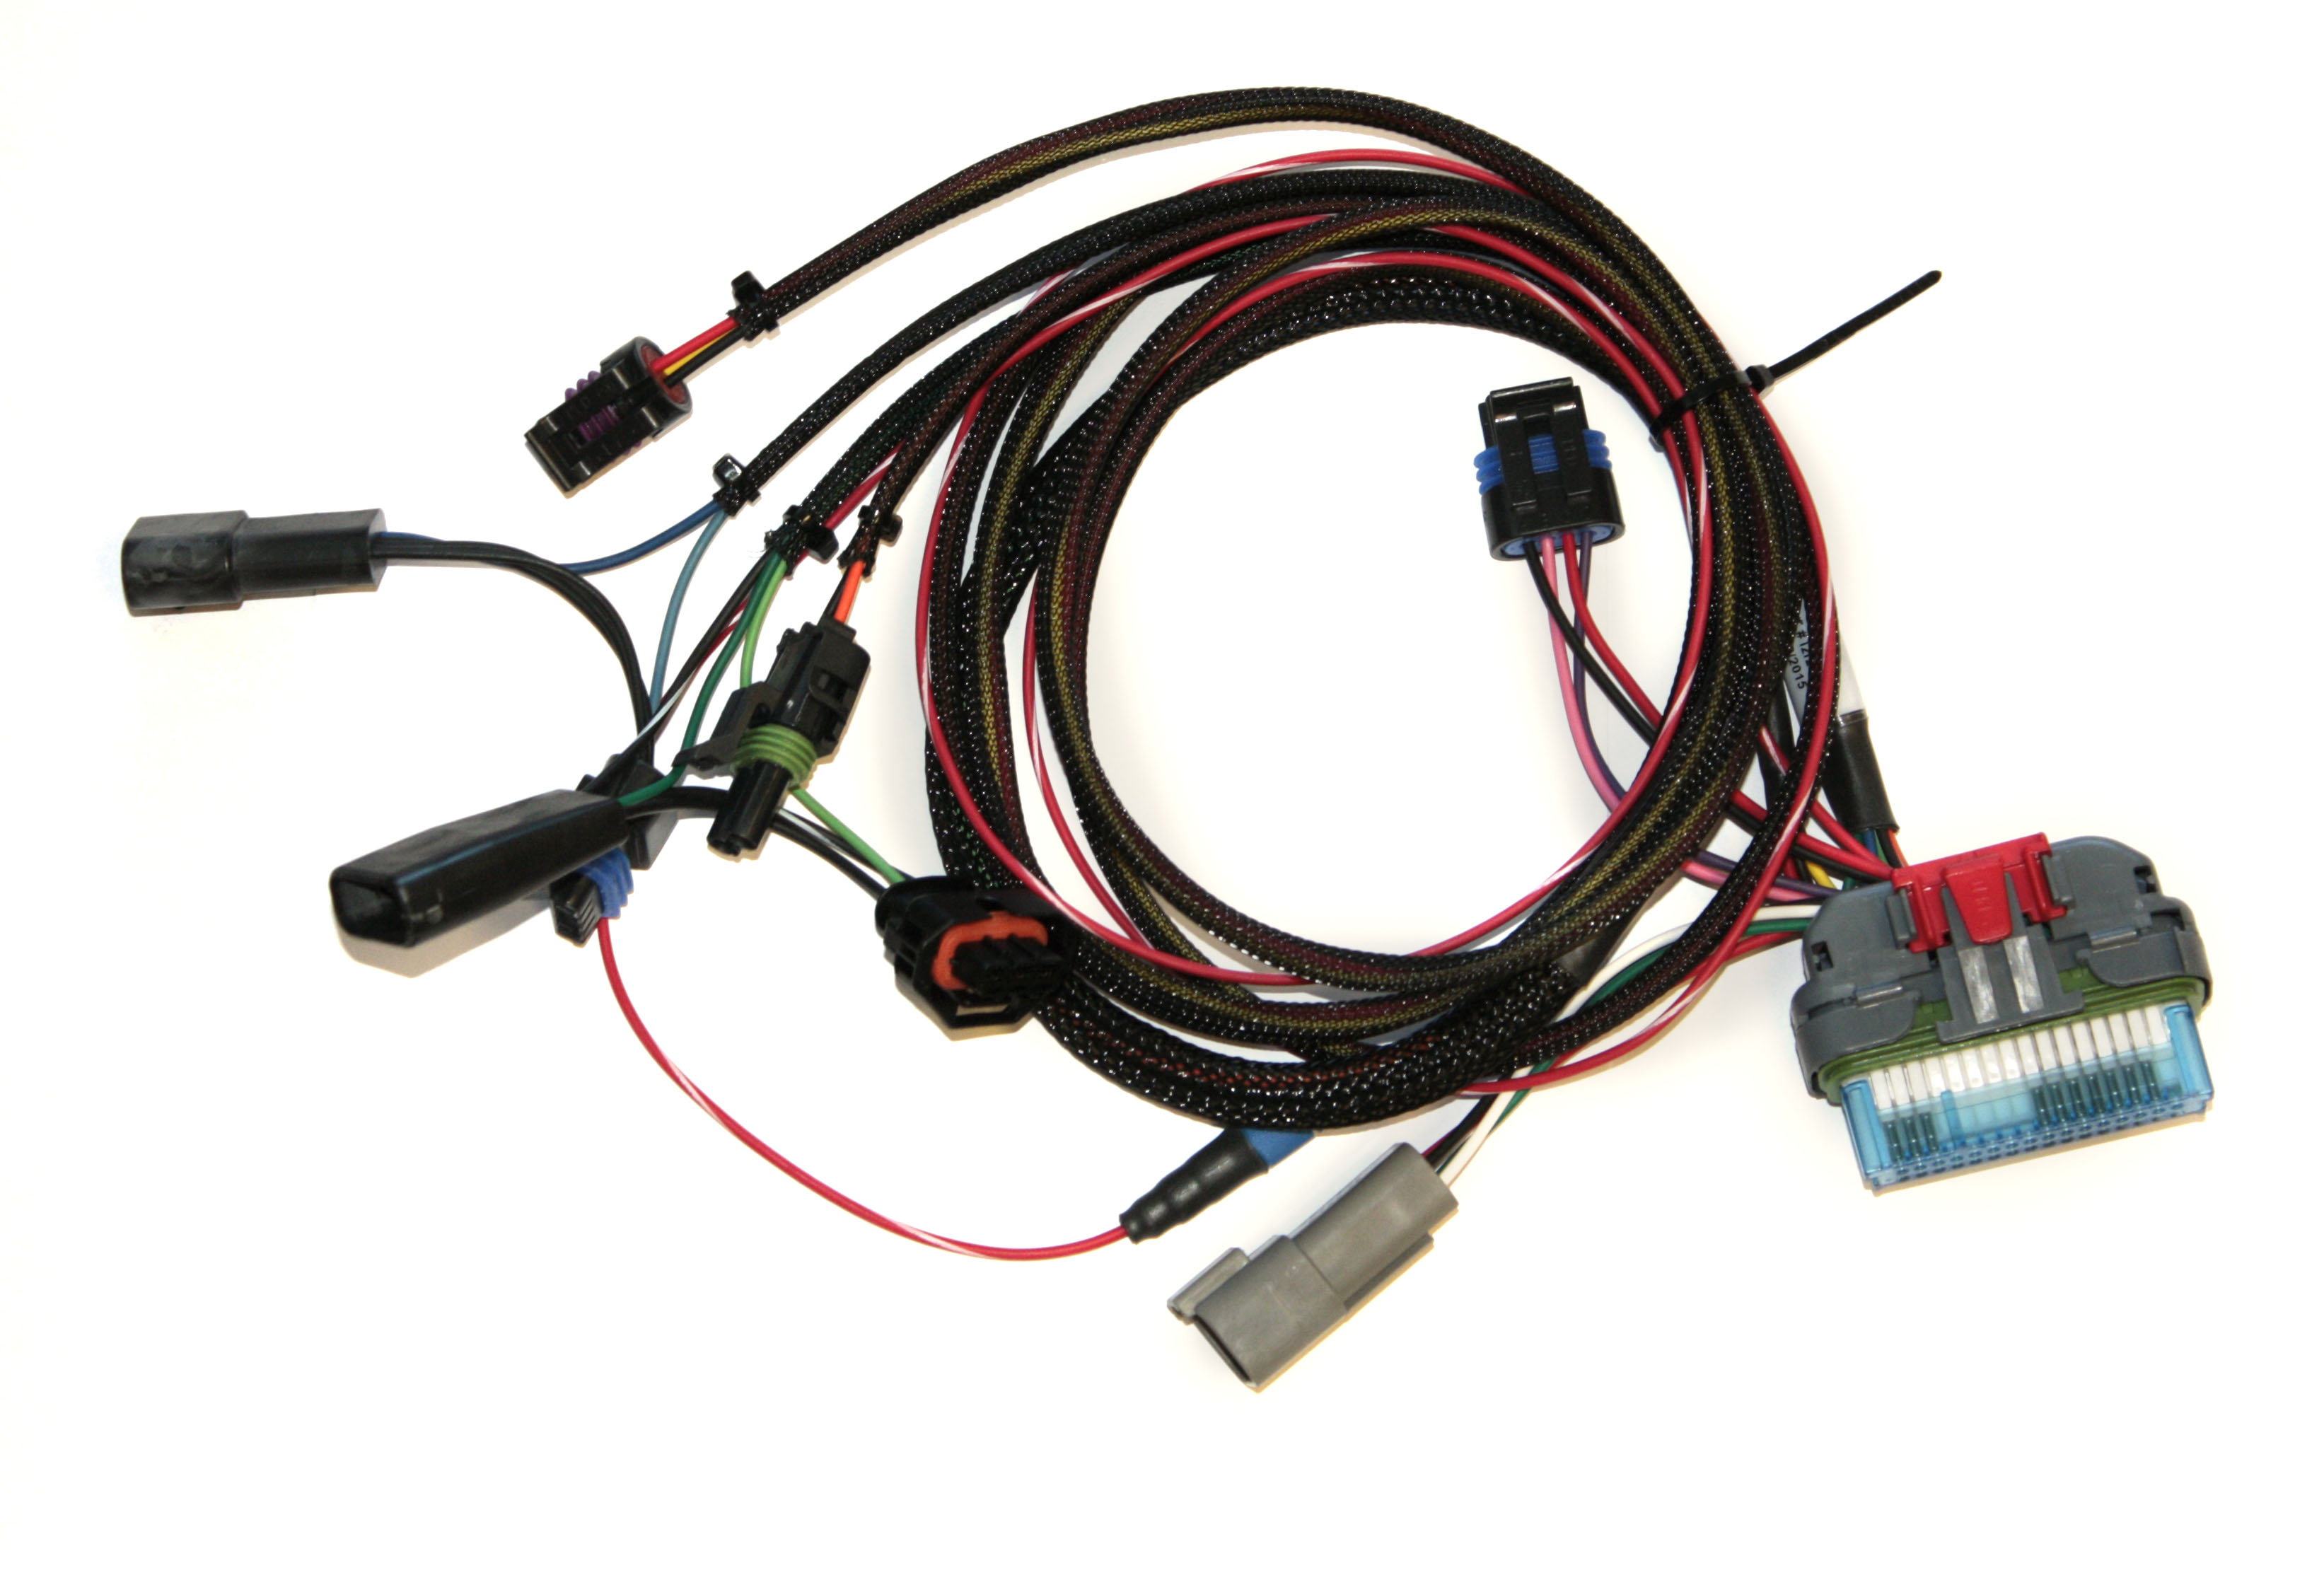 Adrenaline Mix And Match Guide Main Wiring Harness If You Purchase An Adr1007 Kit For Your 20045 2005 Dodge Cummins Will Also Need To The D 9070 1i Which Has Been